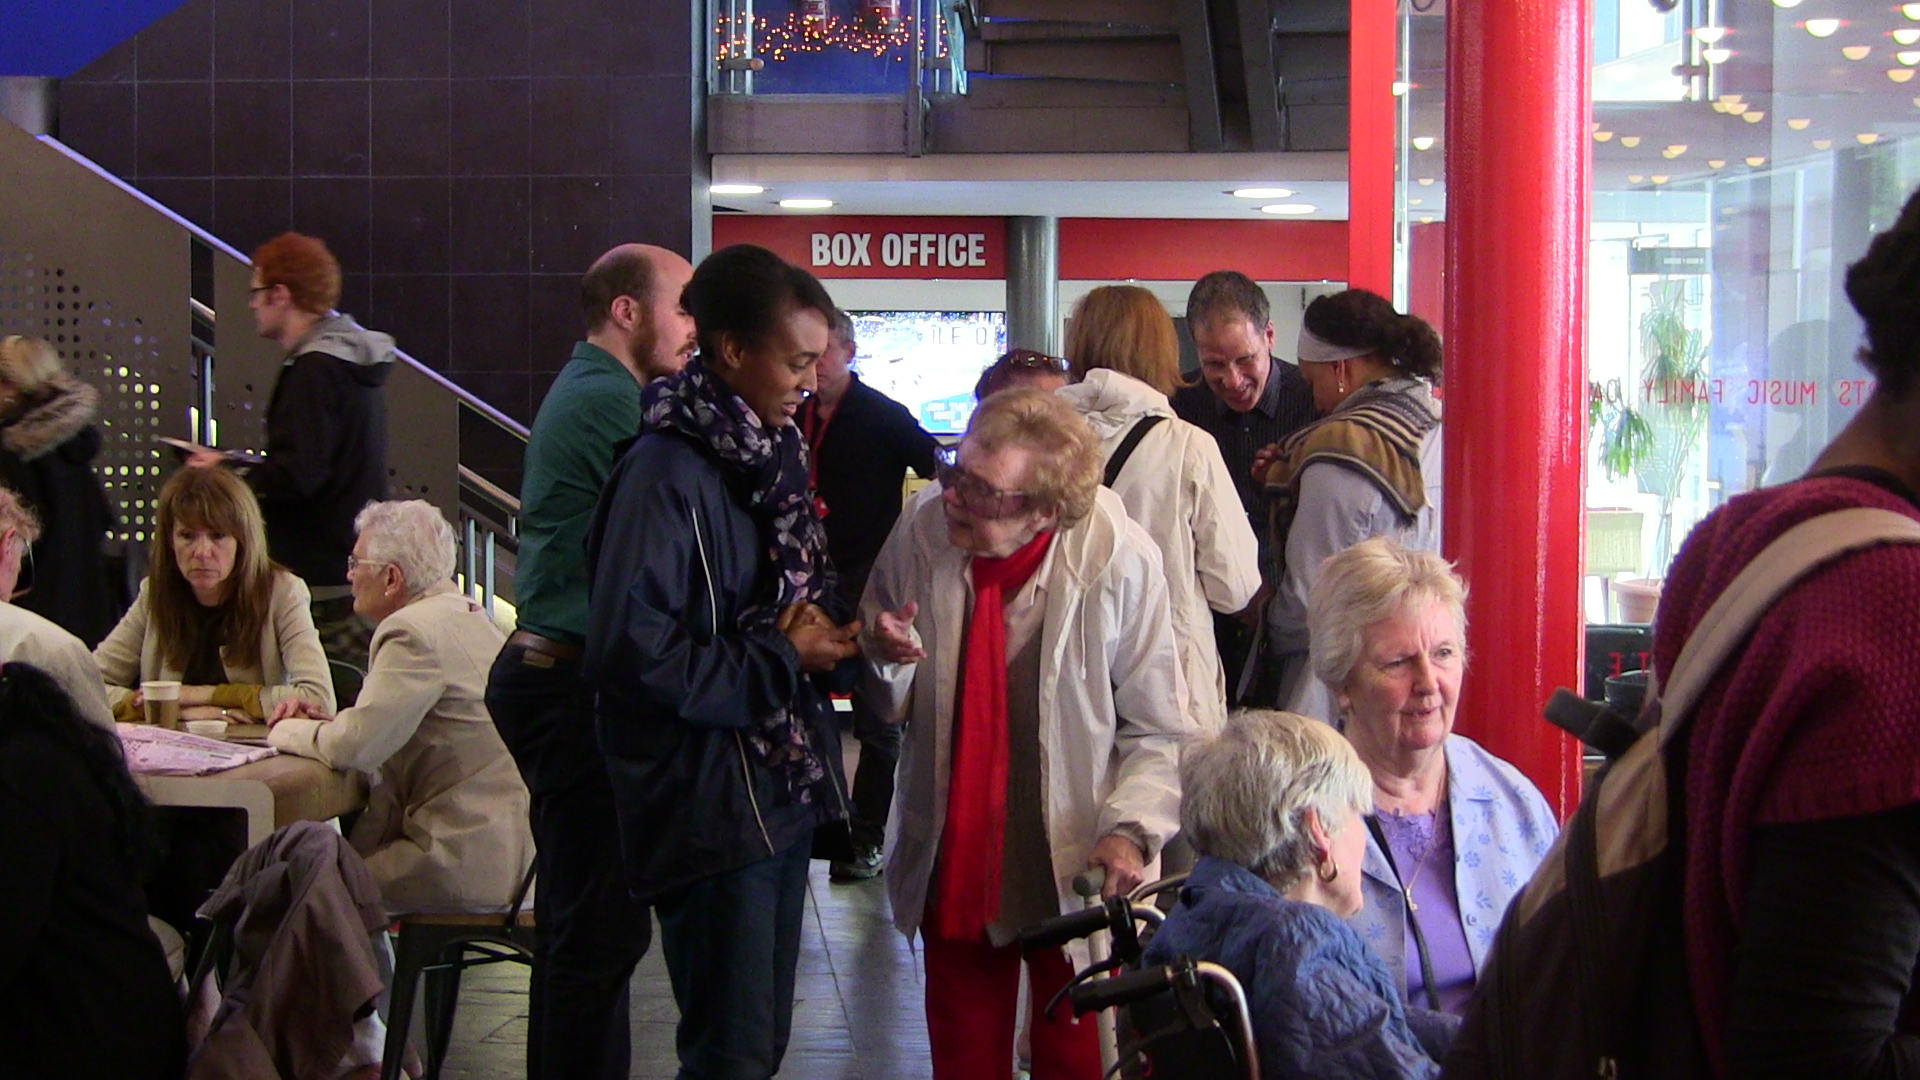 Various groups of people sitting and standing in the Stratford foyer. Centre: an older woman  and access worker in covnersation.